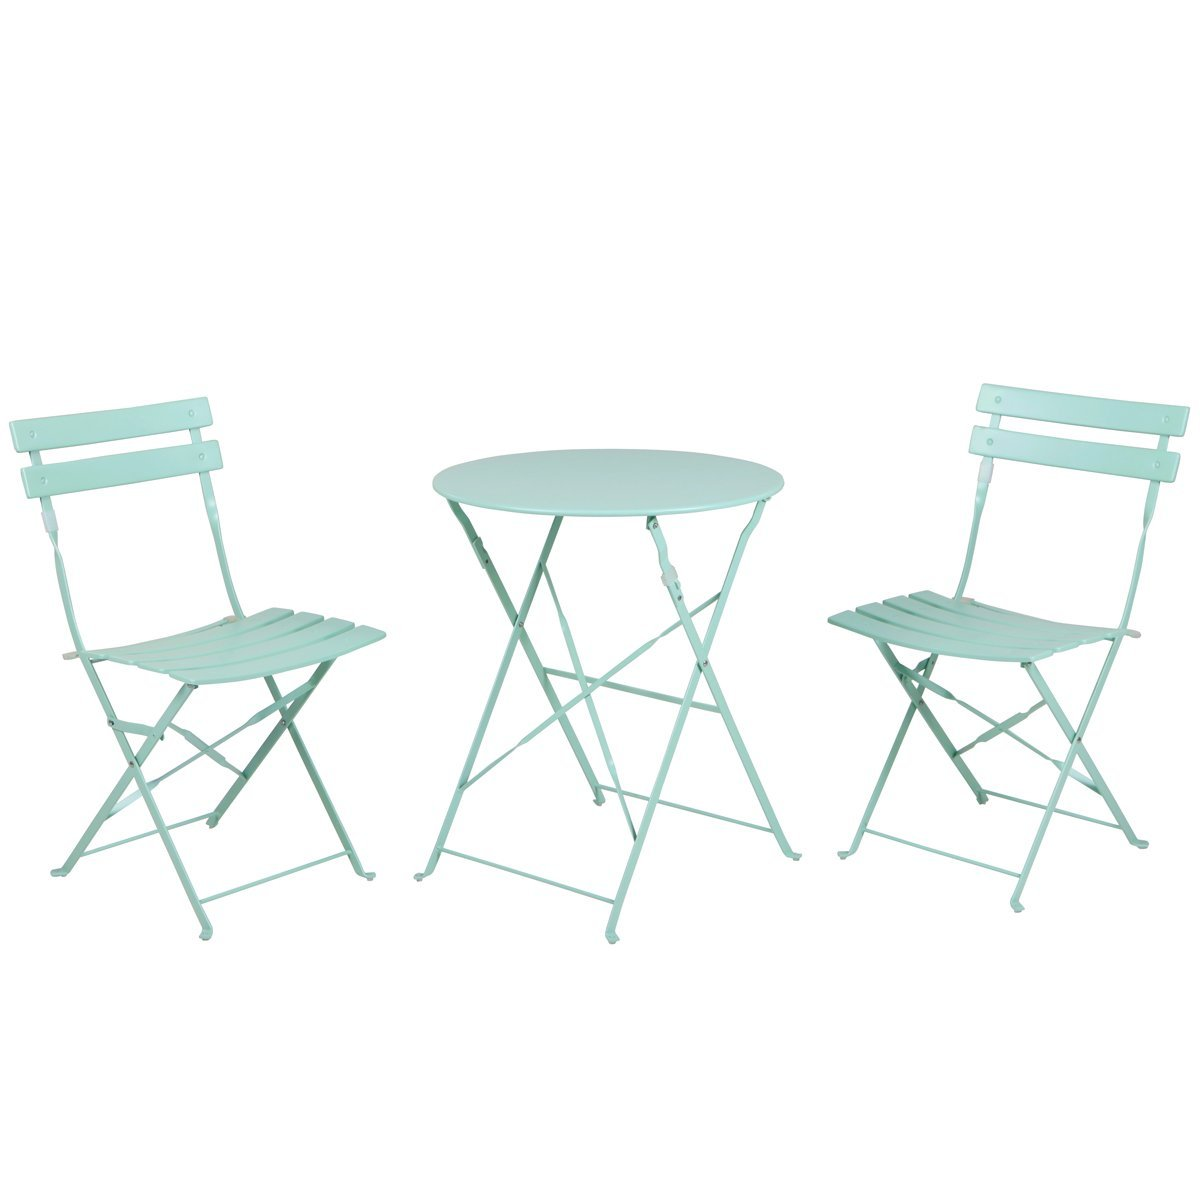 Grand Patio Outdoor Folding Bistro Patio Balcony Furniture Sets,Flat Foldable  Chairs And Table,